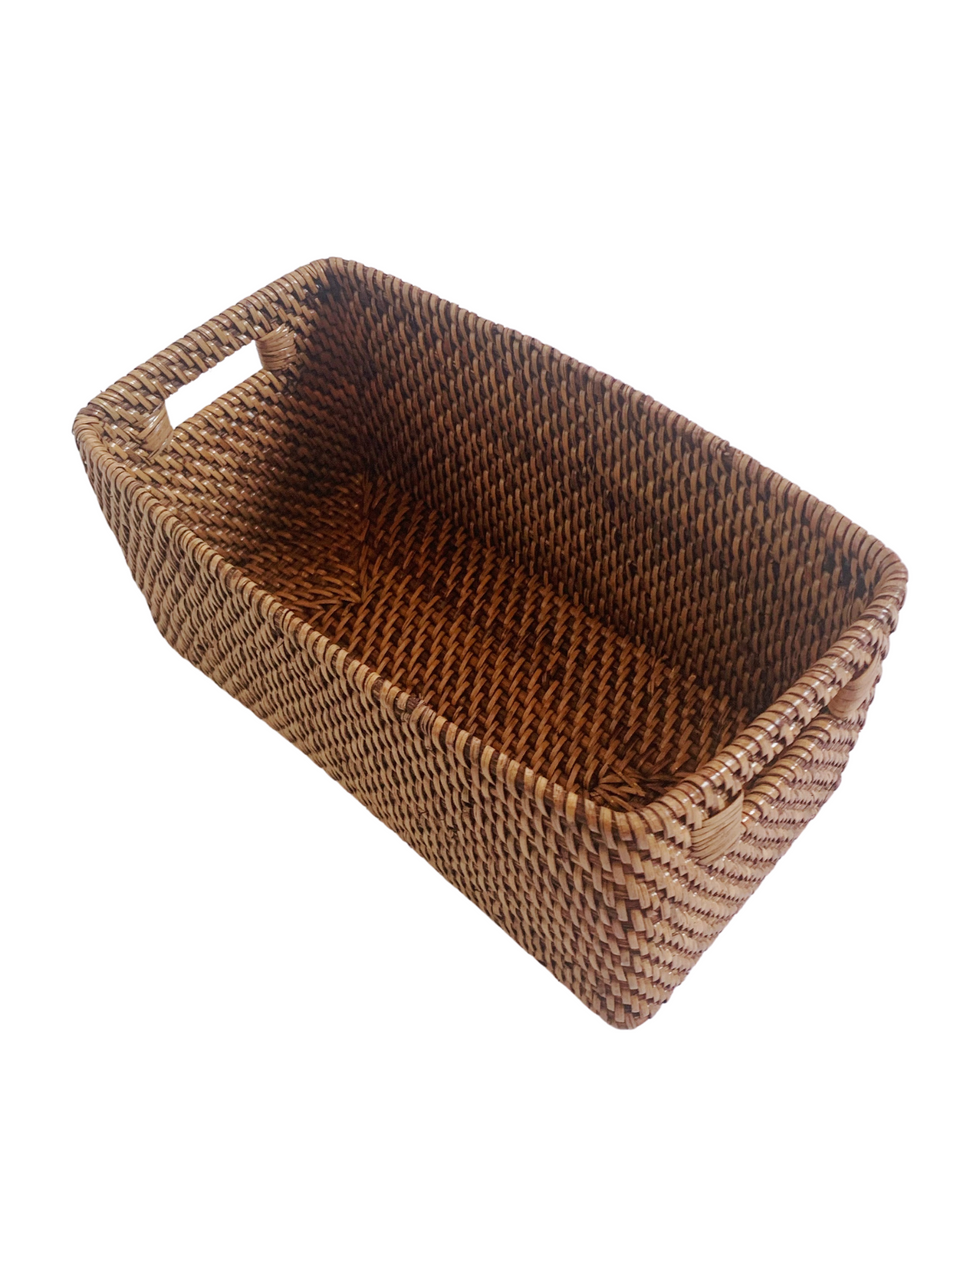 Storage Basket - Small - Antiqued Rattan